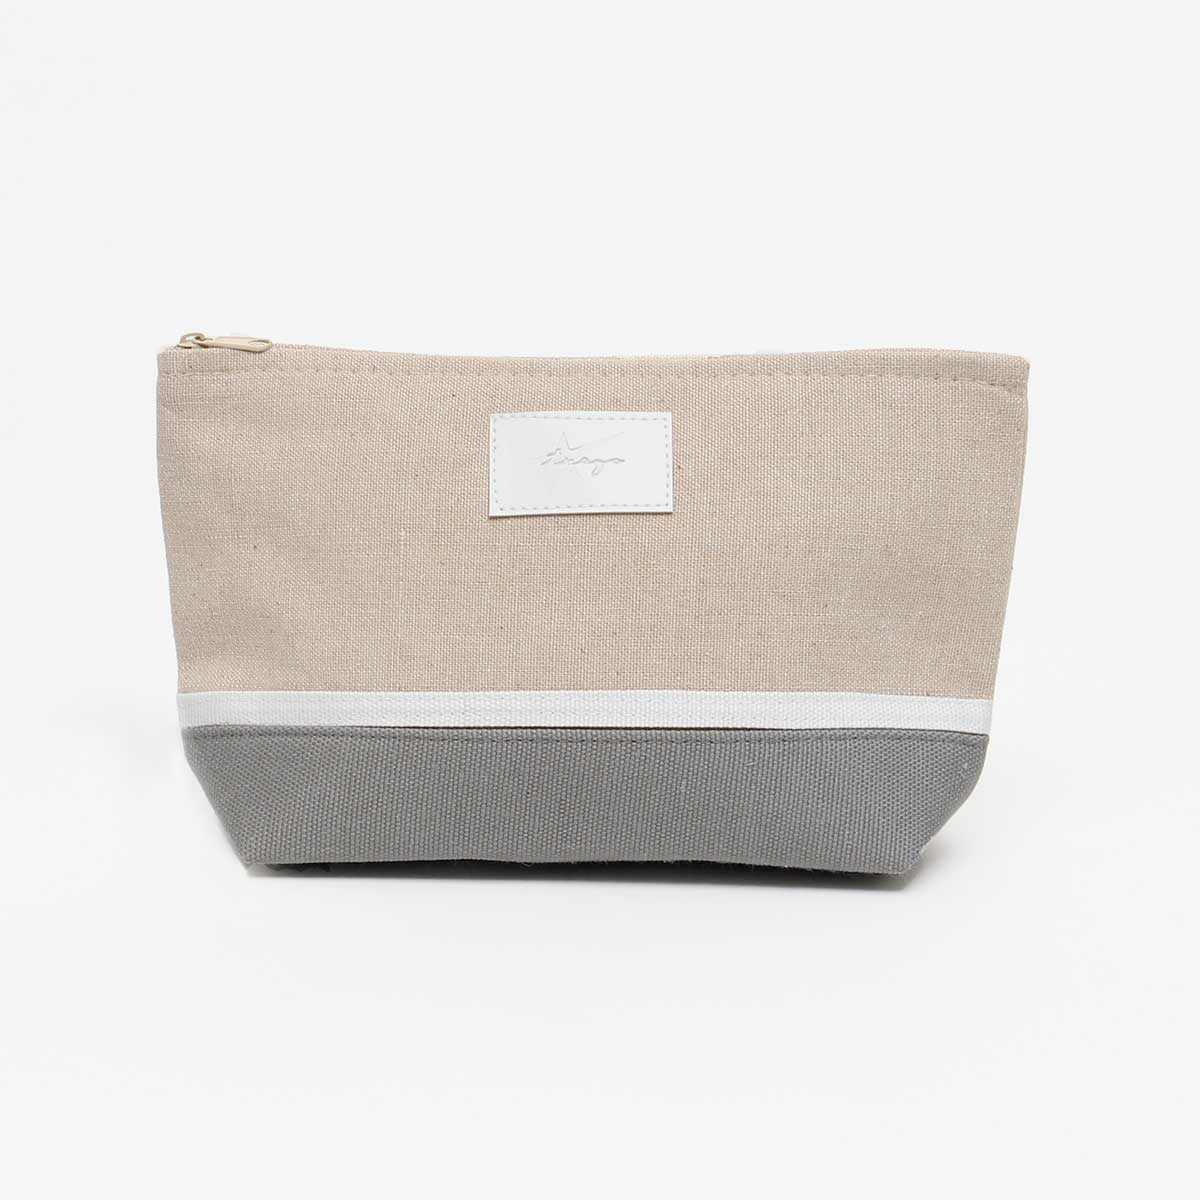 "Gray Maritime Accessory Bag 6""x2.5""x9.5"""